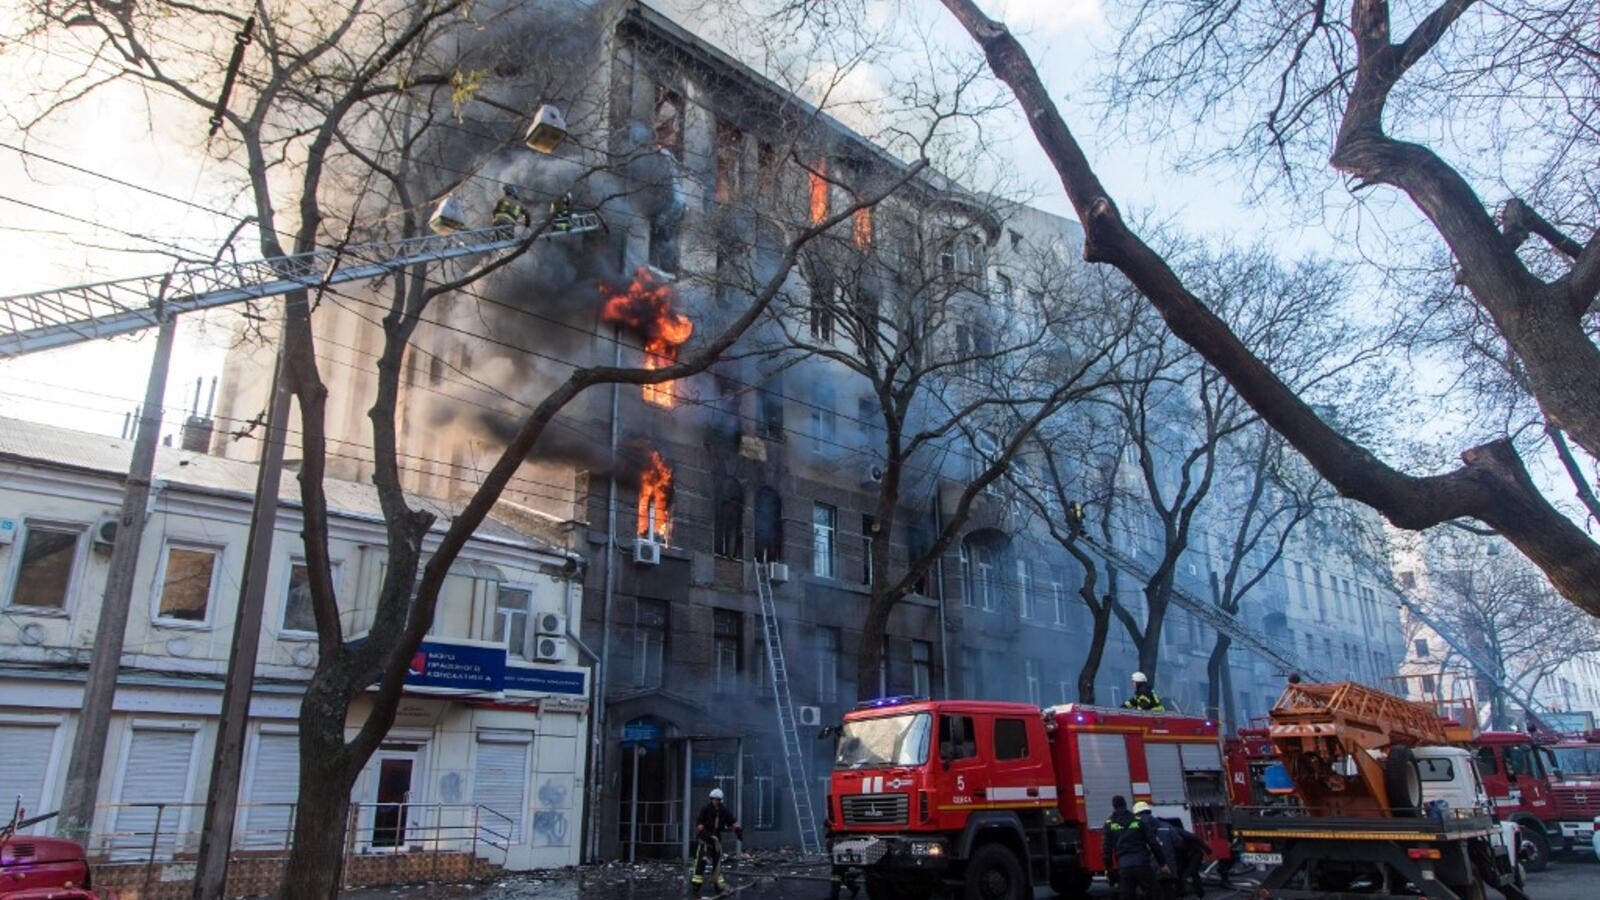 Firefighters extinguish a fire inside a college building in central Odessa on December 4, 2019. Ukrainian President Volodymyr Zelensky warned on December 5, 2019 that a deadly fire in the southern port city of Odessa could claim more victims, saying 14 people were still missing. Oleksandr GIMANOV / AFP